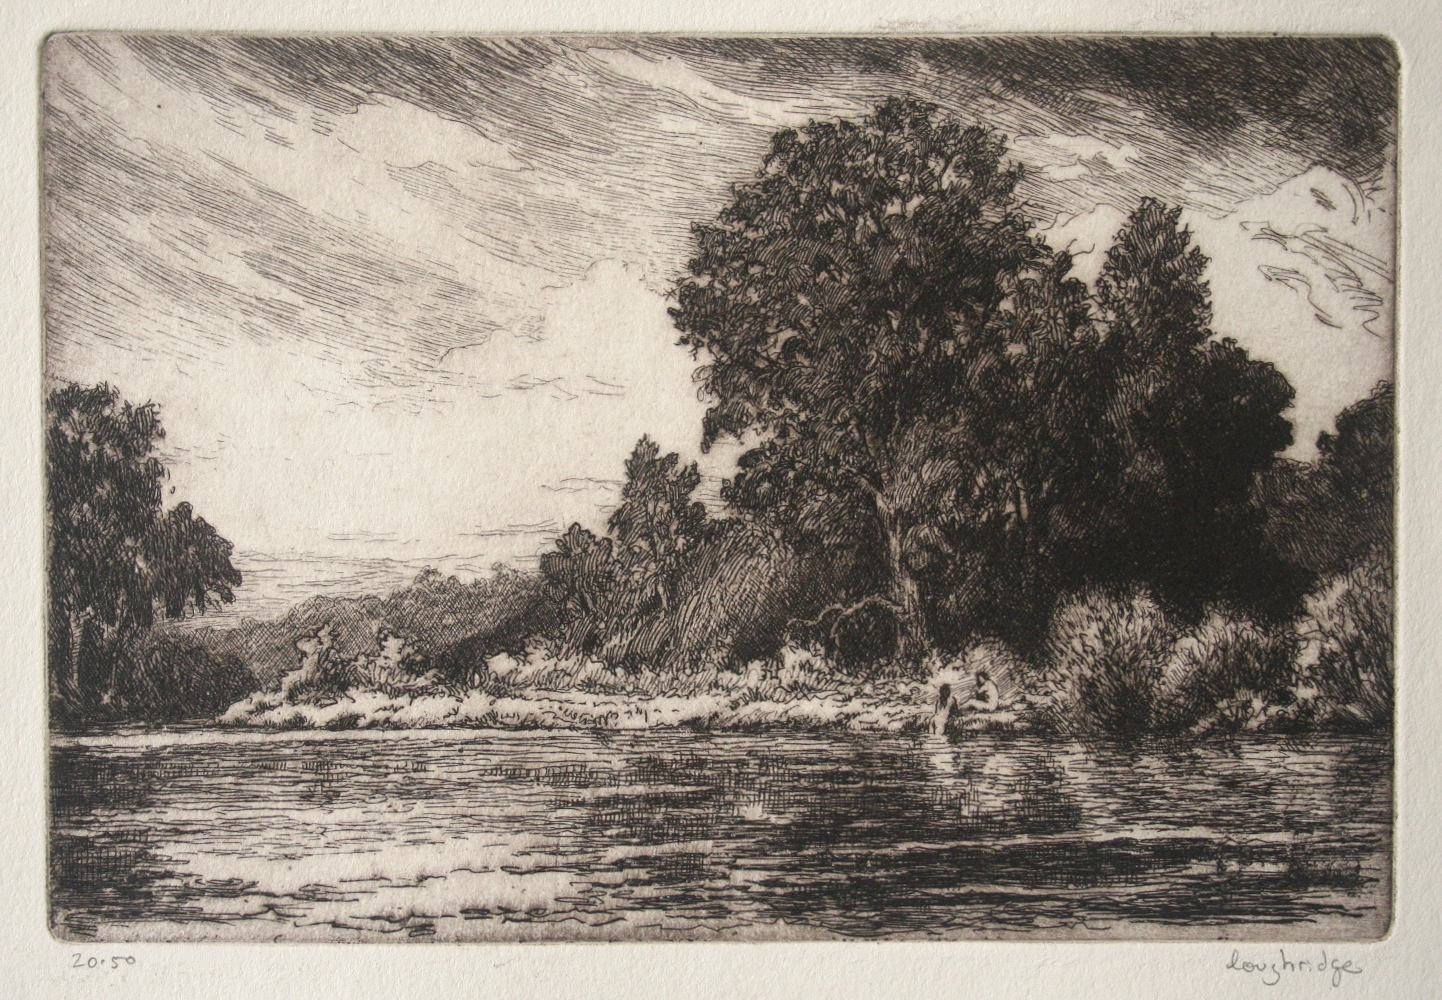 Landscape and river, etching, 7.25x4.75, ed 50.jpg